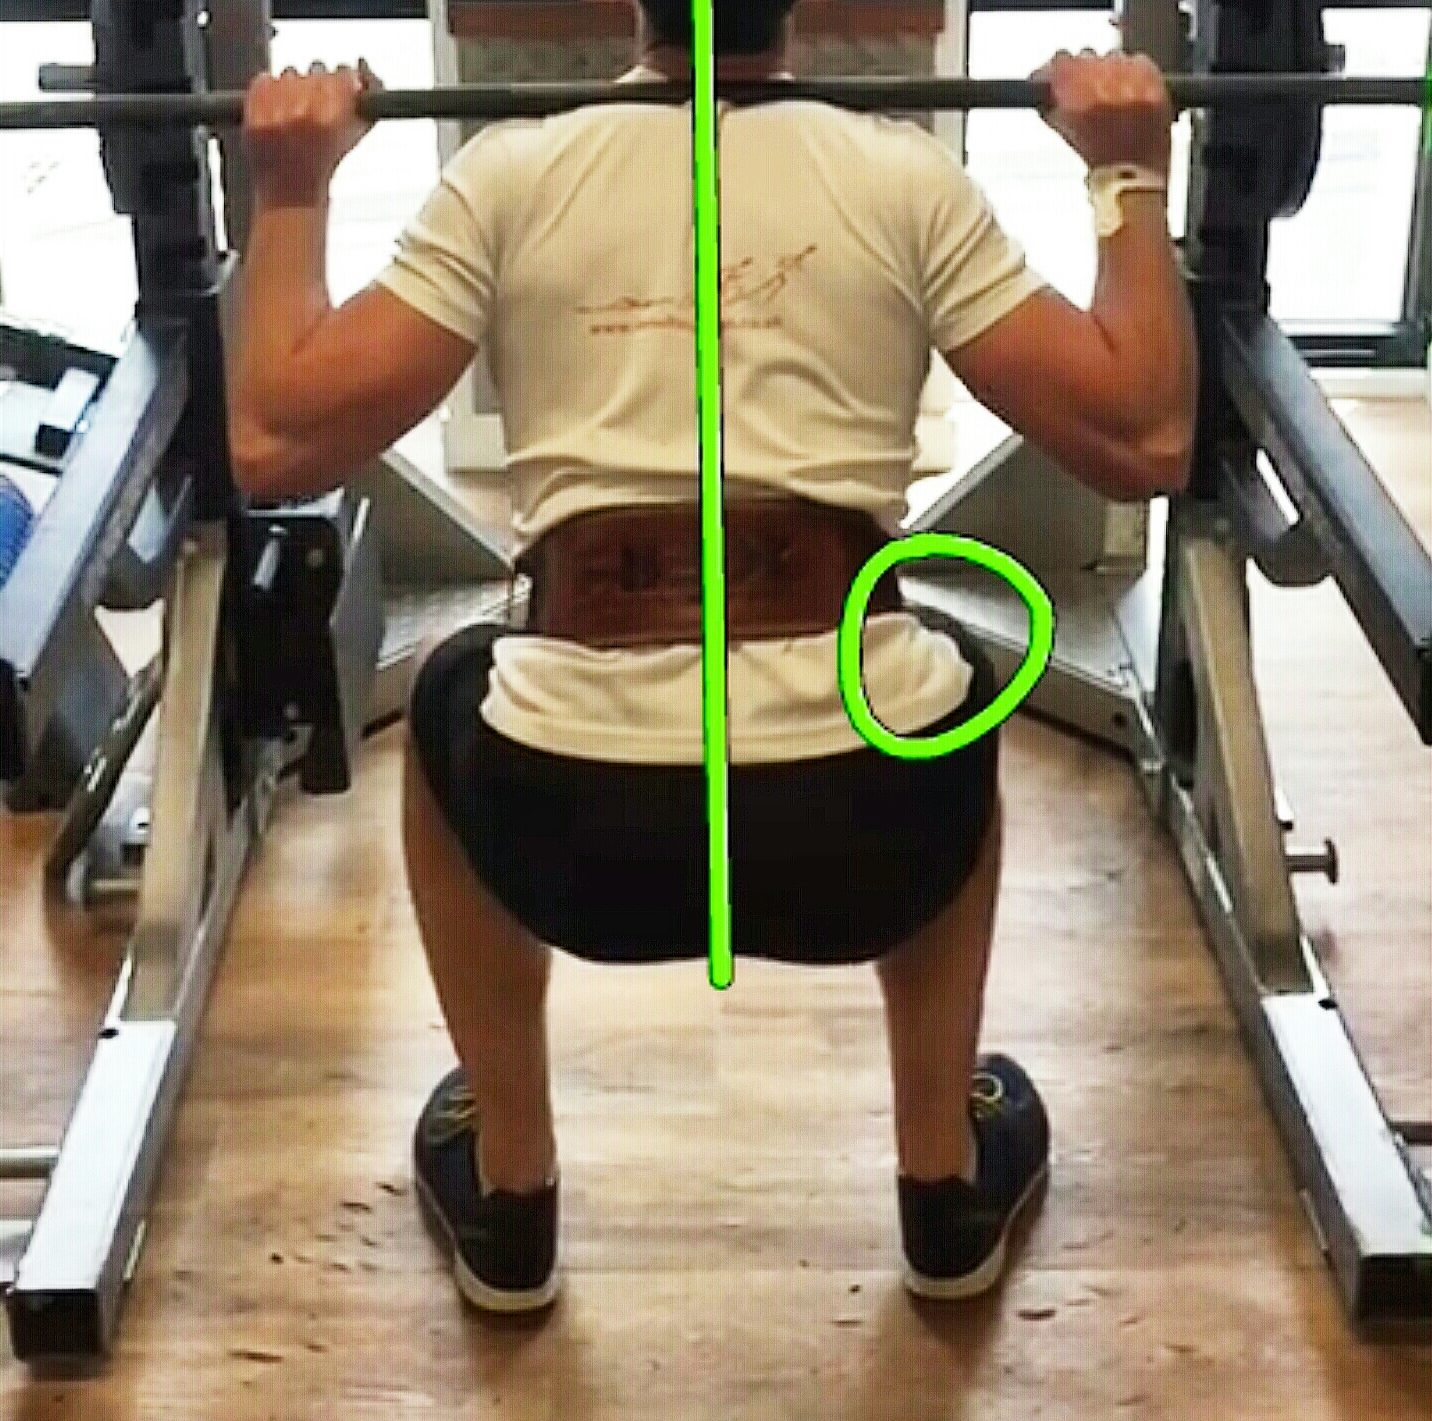 Get a full analysis of your squat